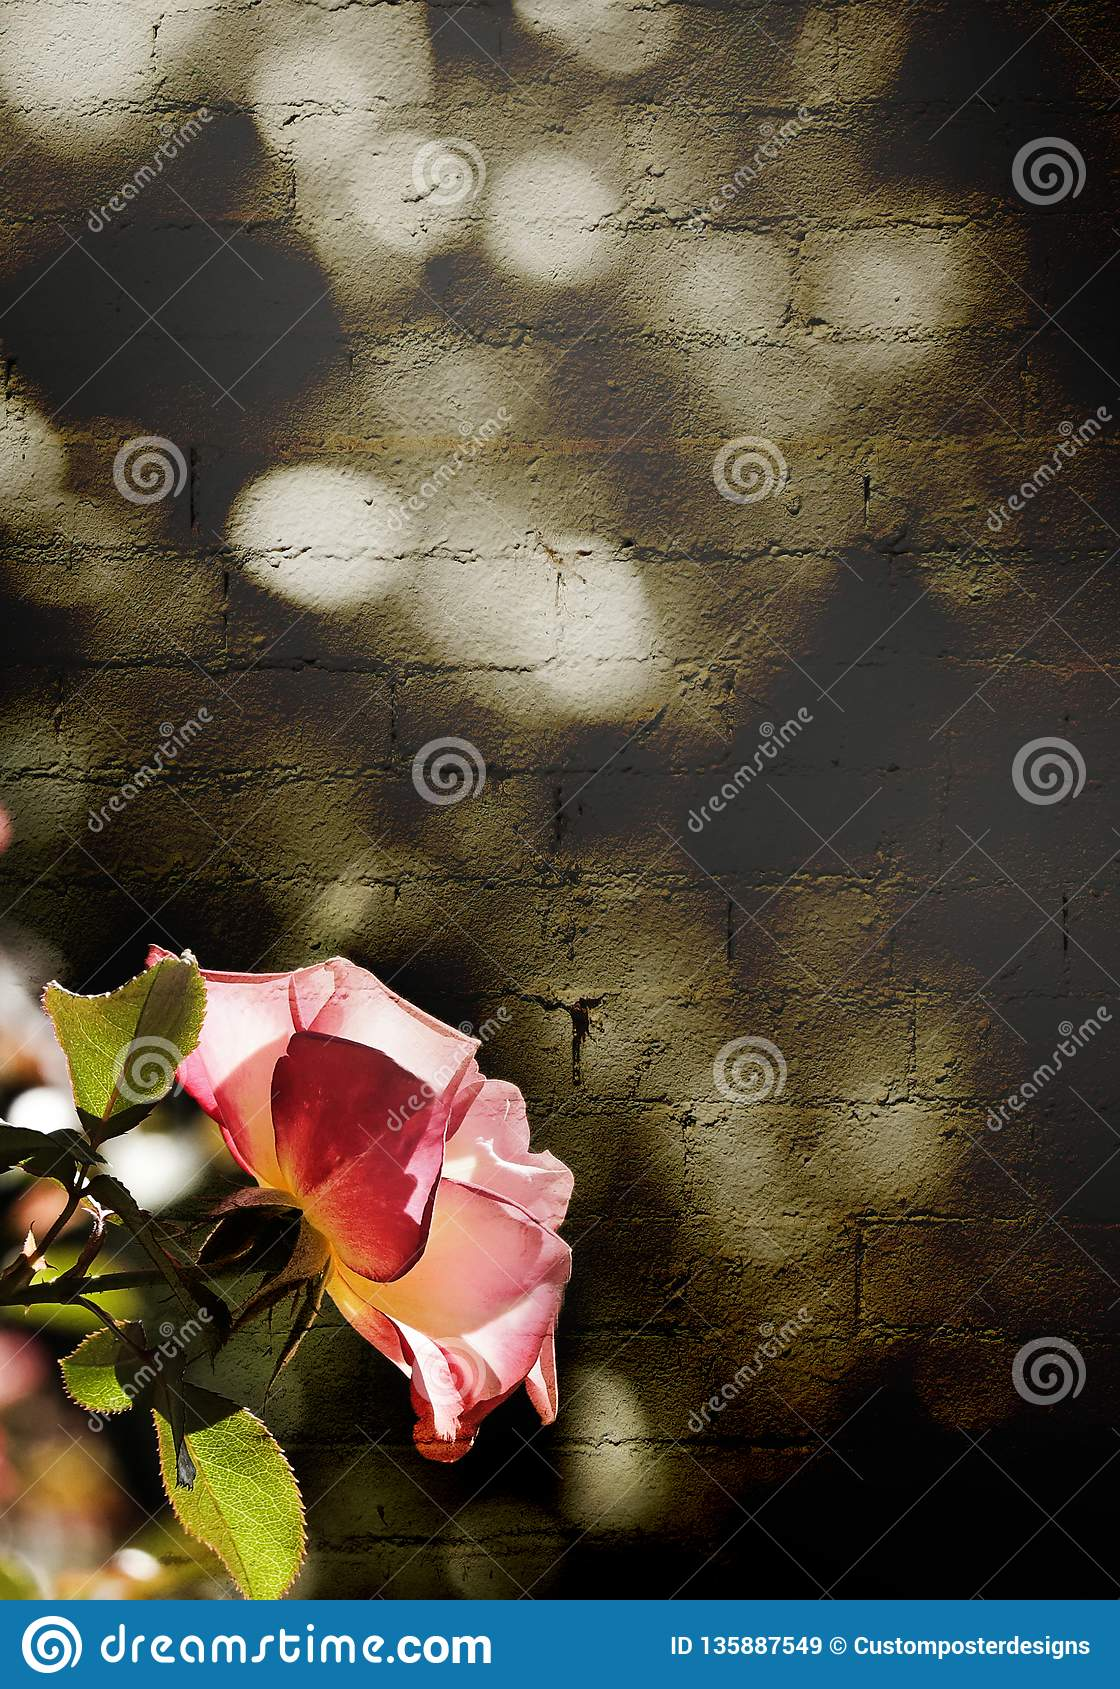 A pink rose in front of a brick wall in sepia.